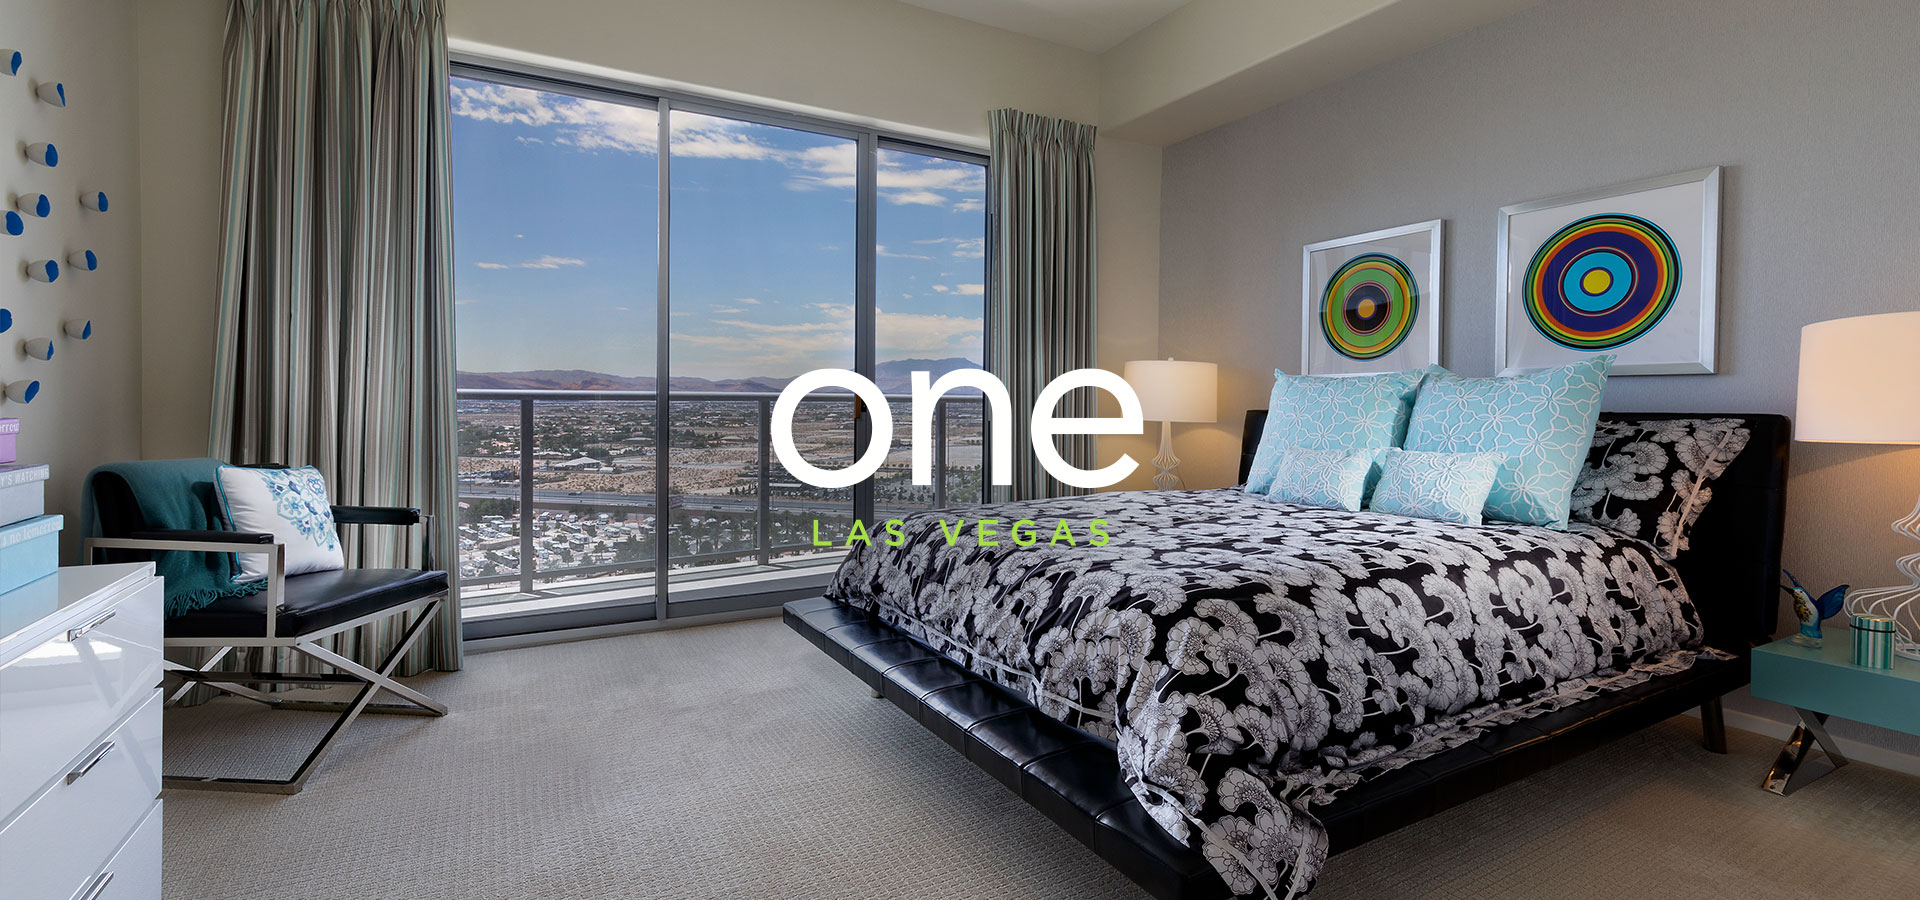 Bedroom inside on of the model homes at One Las Vegas with text that reads 'One Las Vegas'